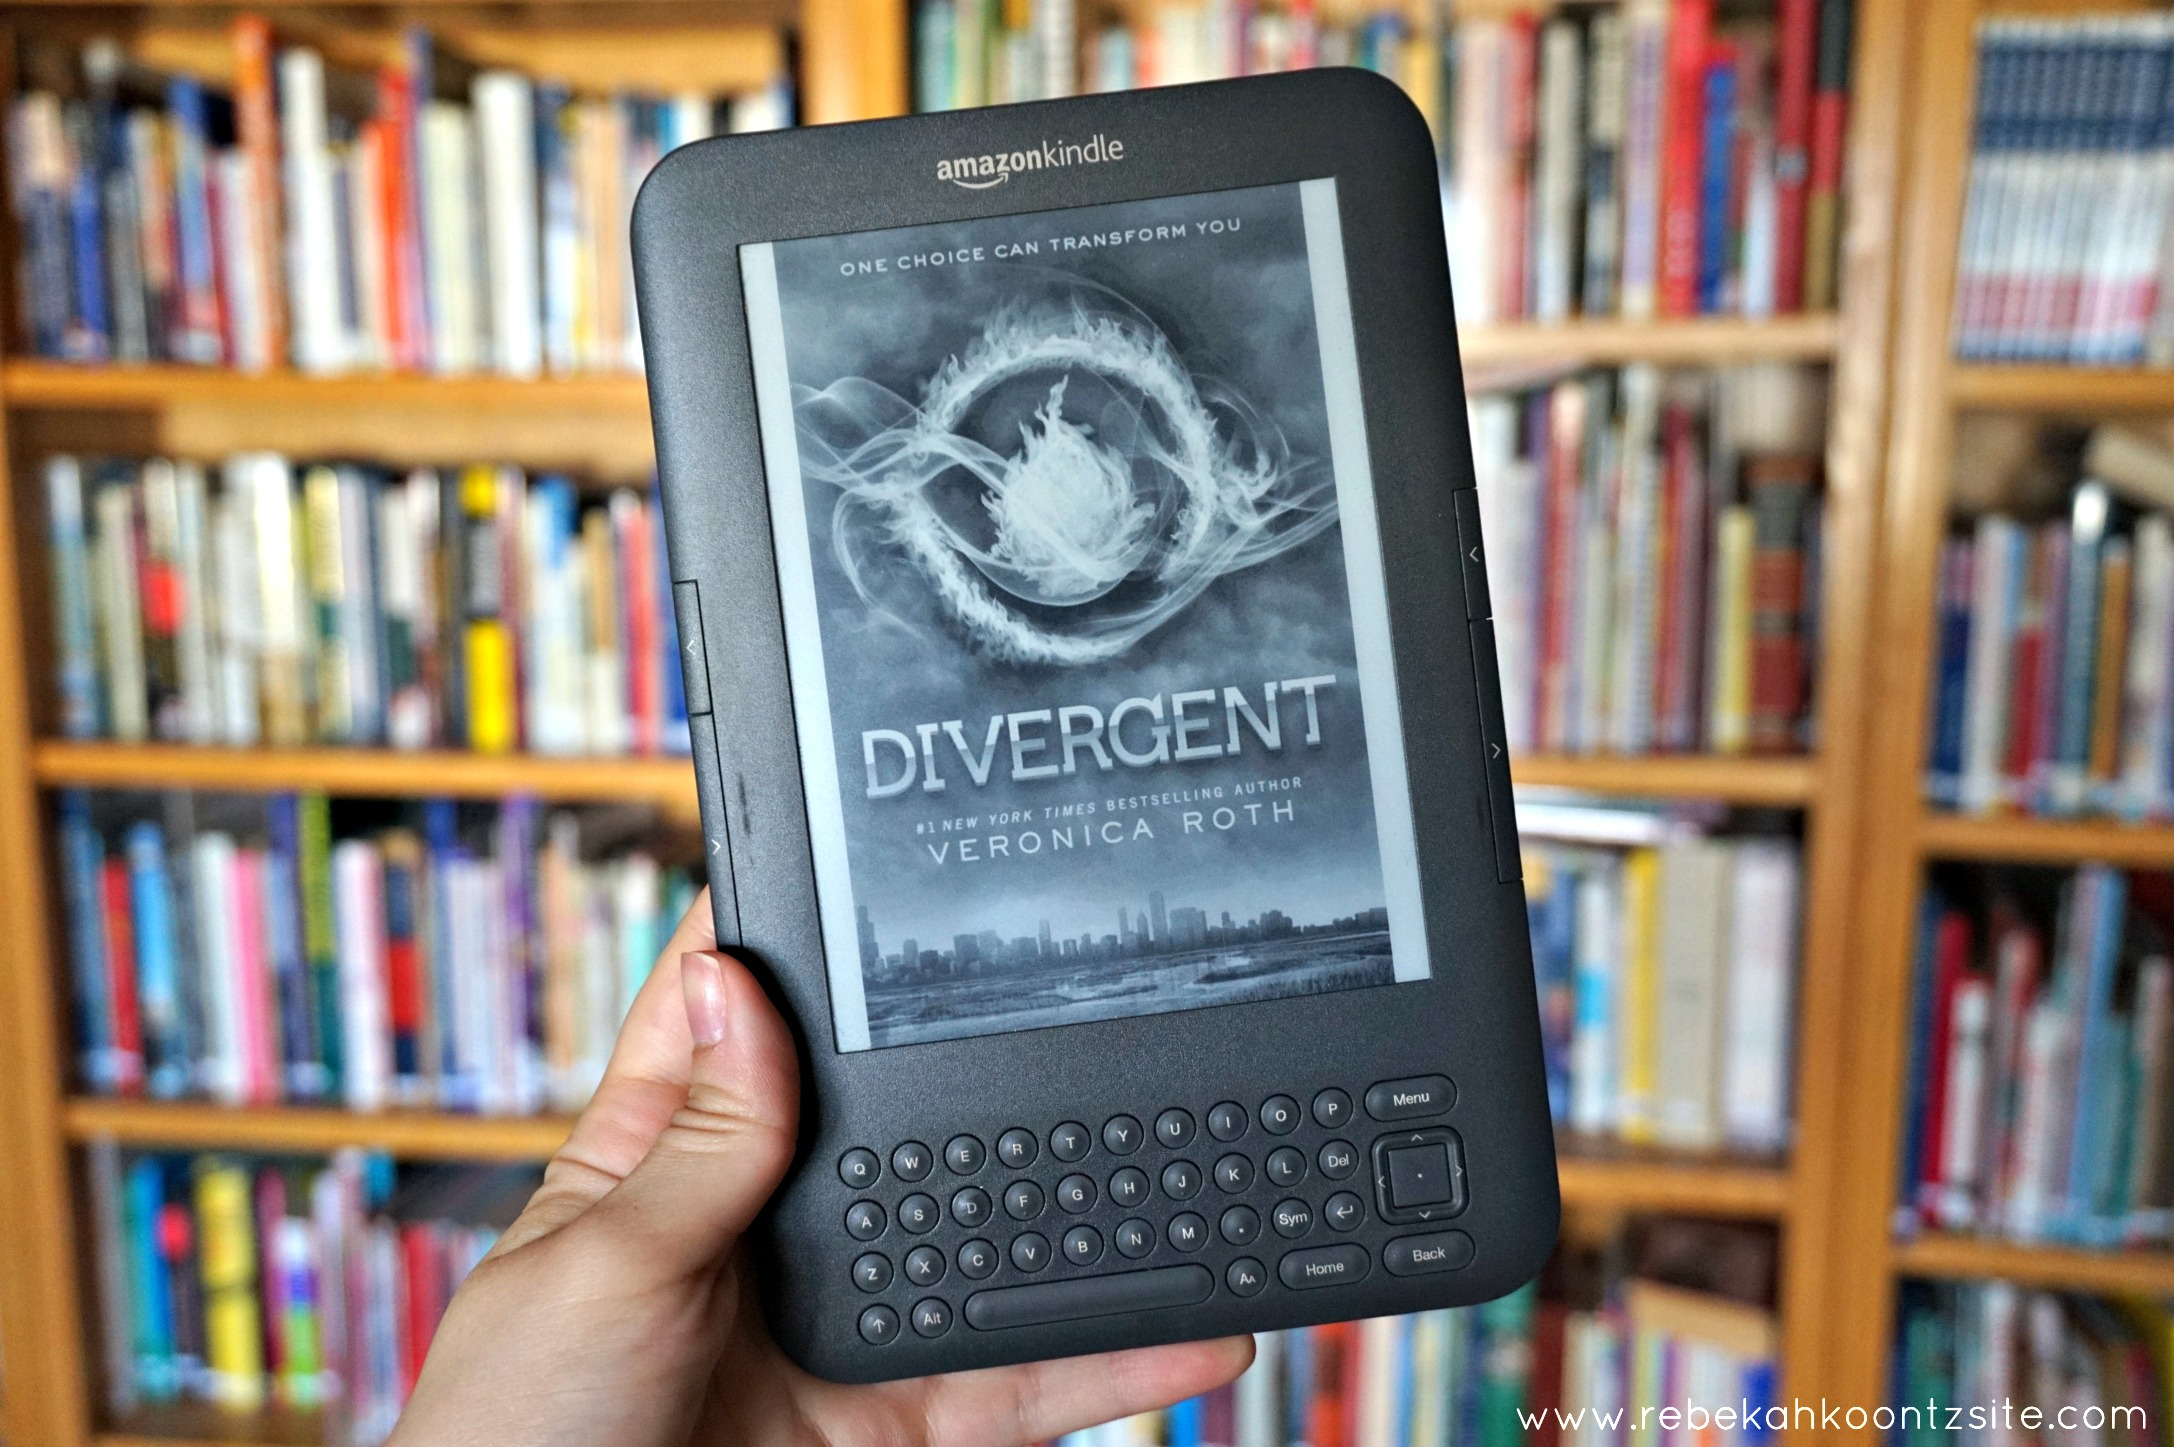 Divergent by Veronica Roth book review Rebekah Koontz site